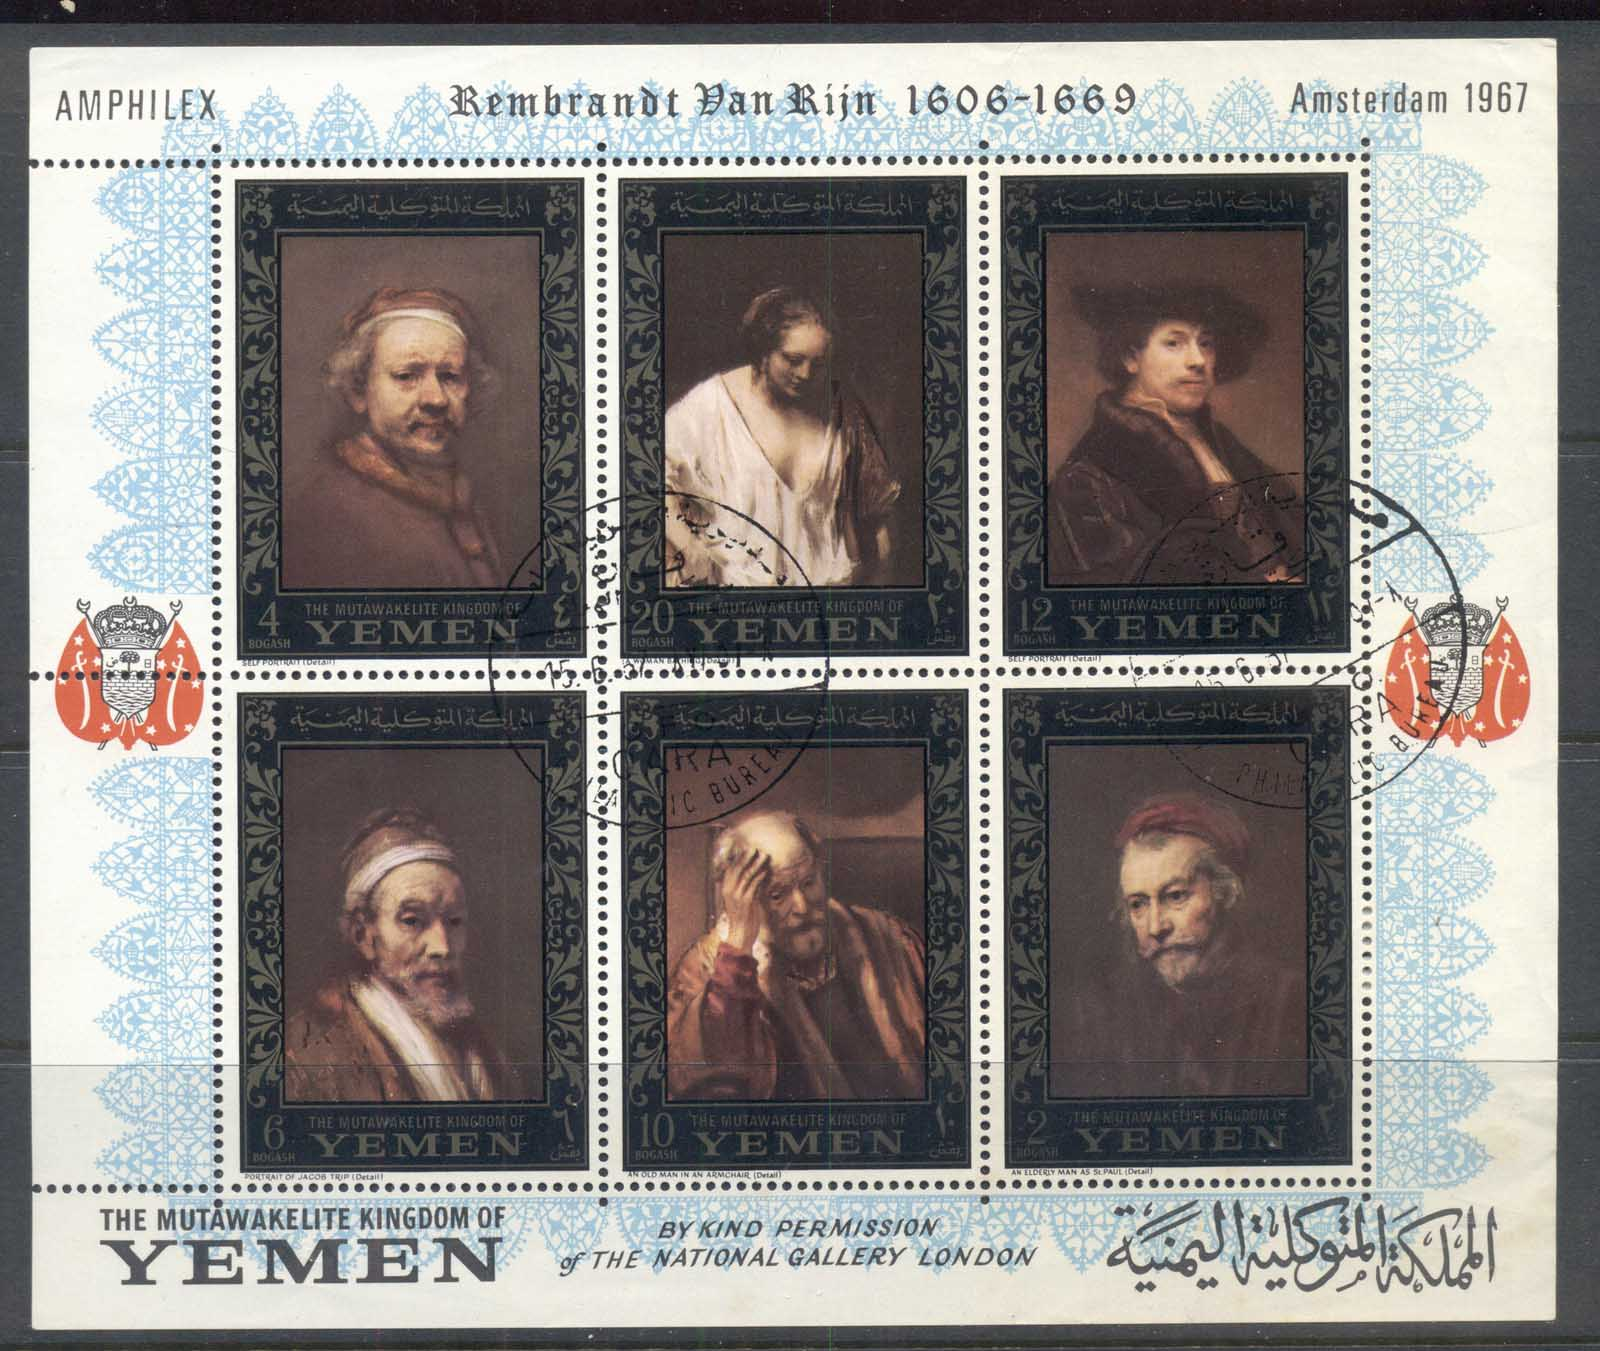 Yemen Kingdom 1967 Mi#278-283a Amphilex Amsterdam Rembrandt Paintings, gold frame sheetlet CTO